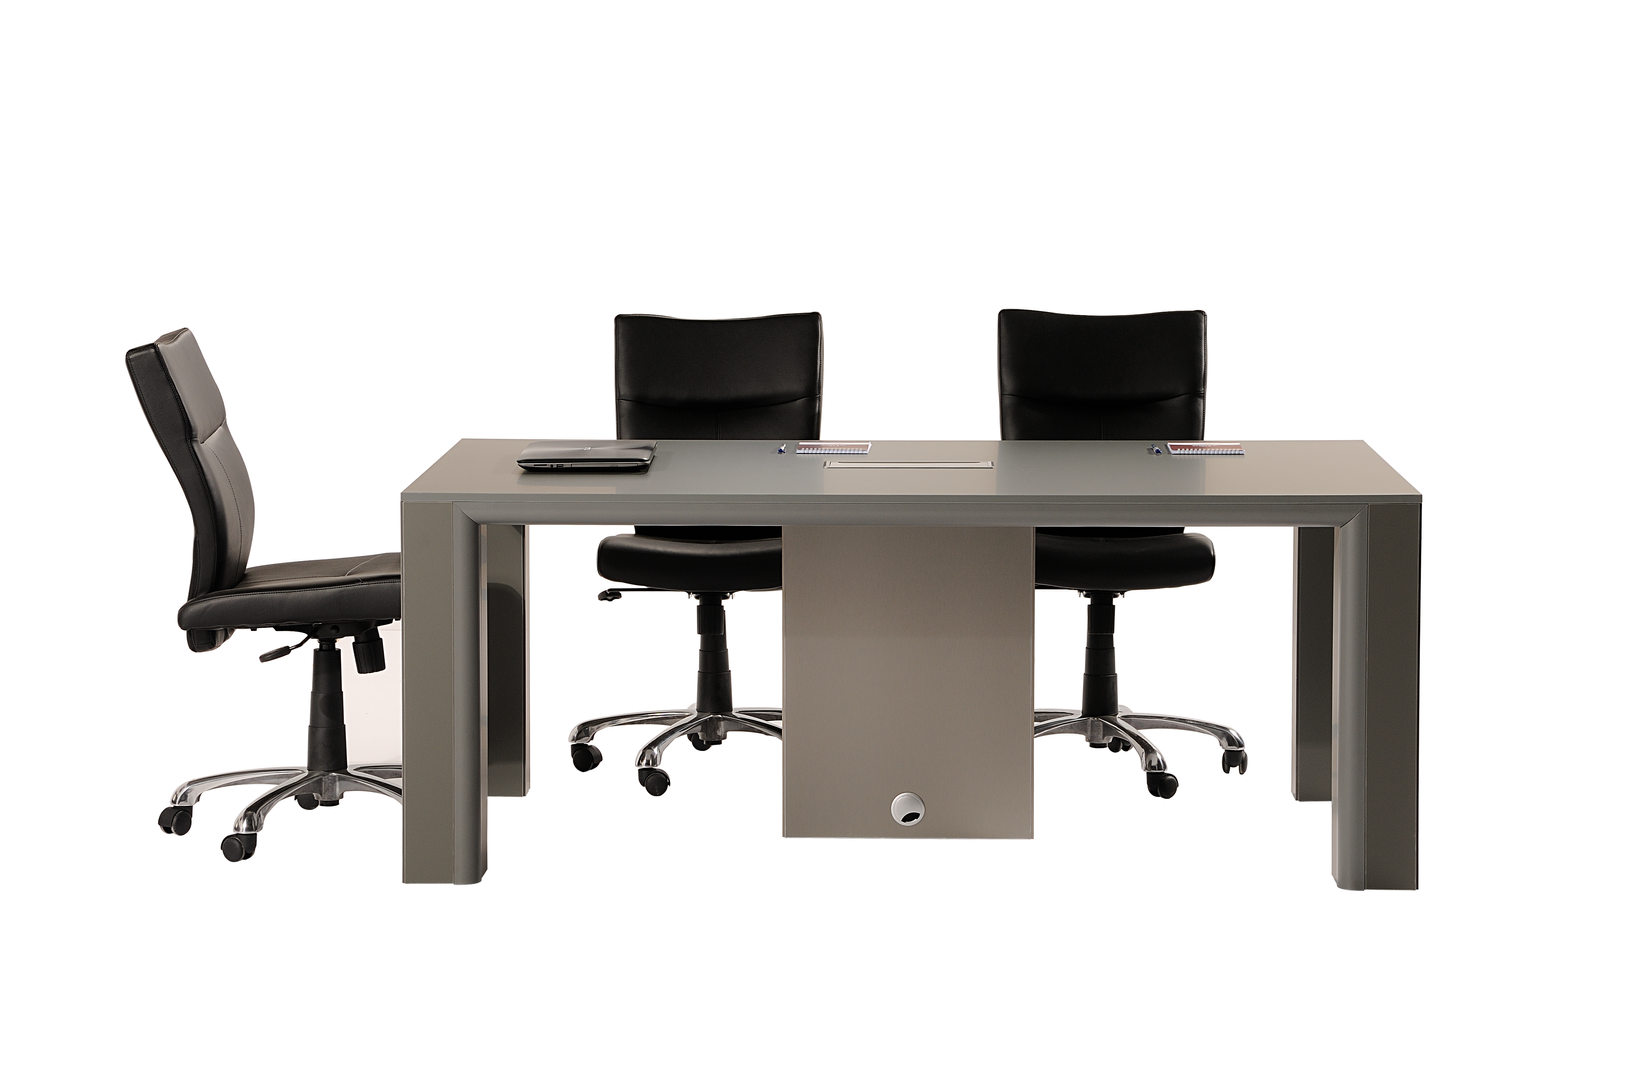 Zagors,Conference table, boardroom table meeting table Rectangular table, square table